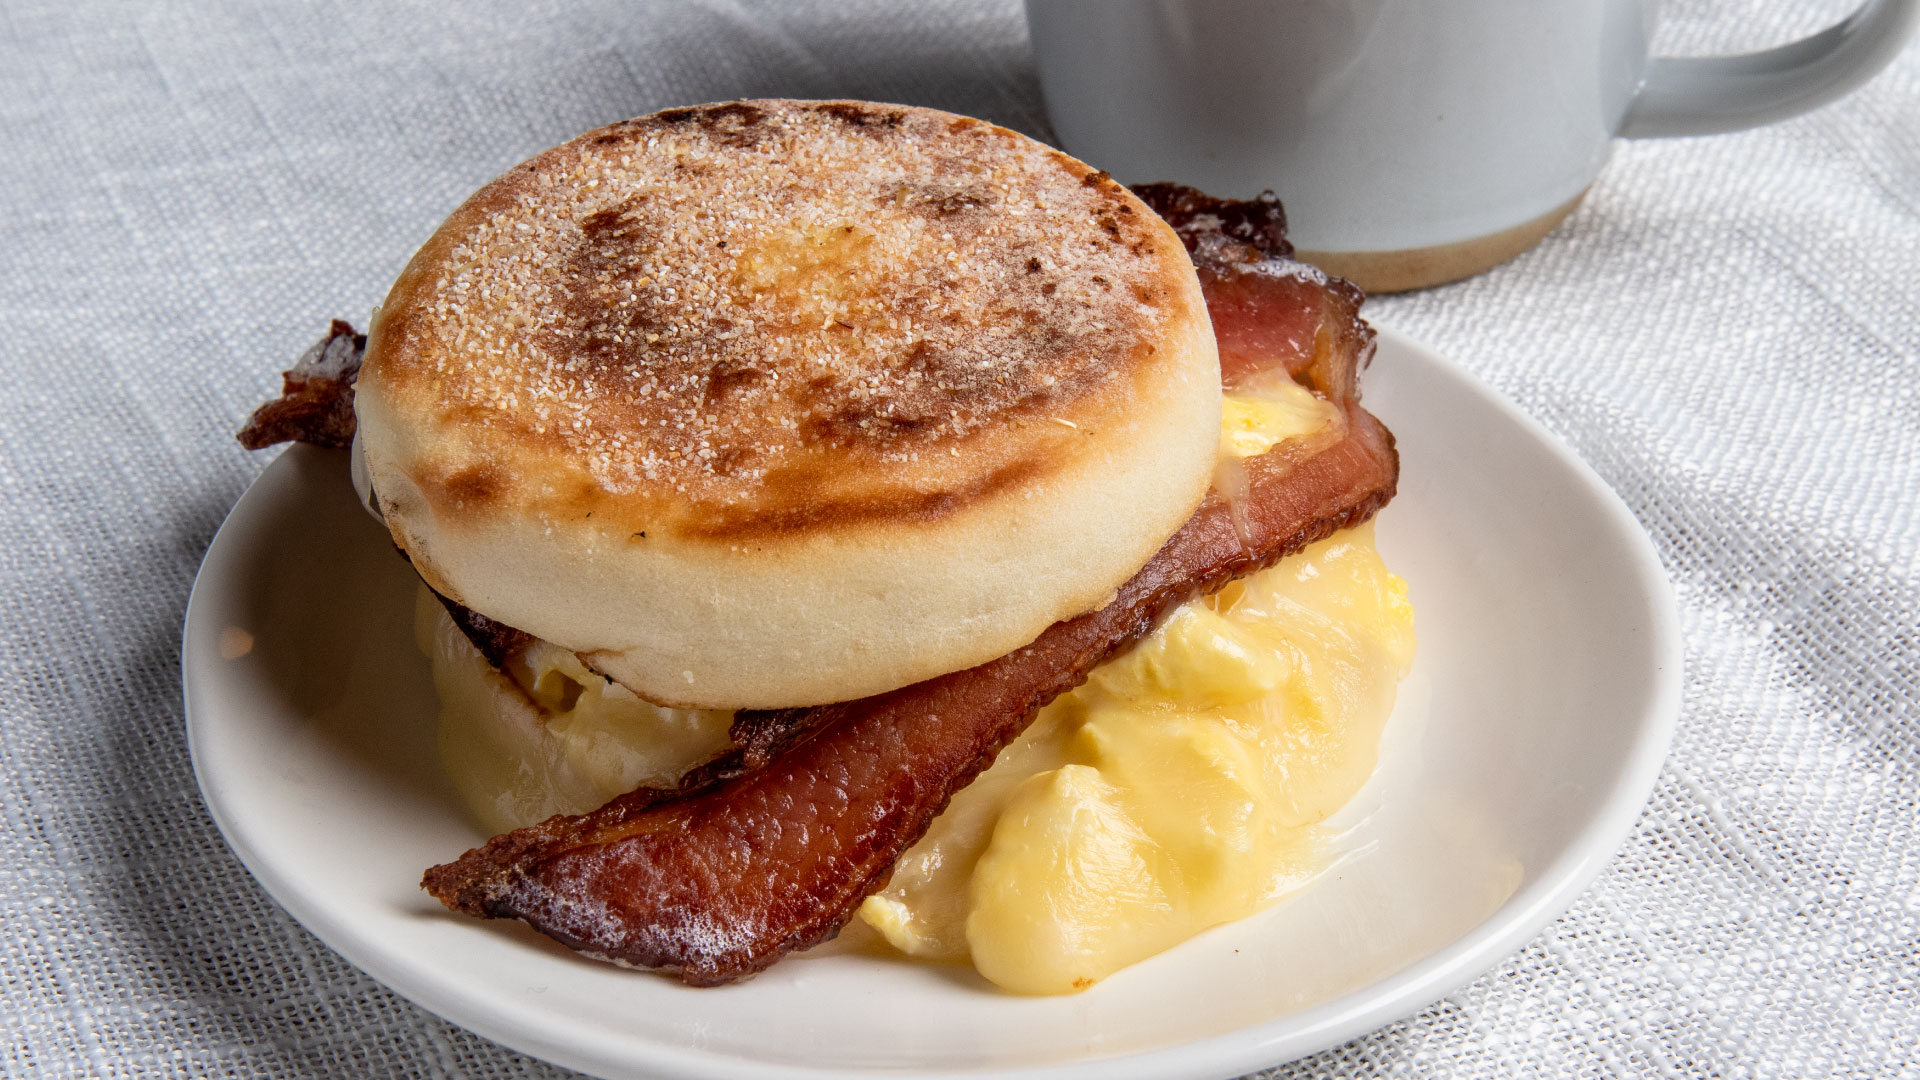 Murray's Ultimate Bacon, Egg & Cheese 1